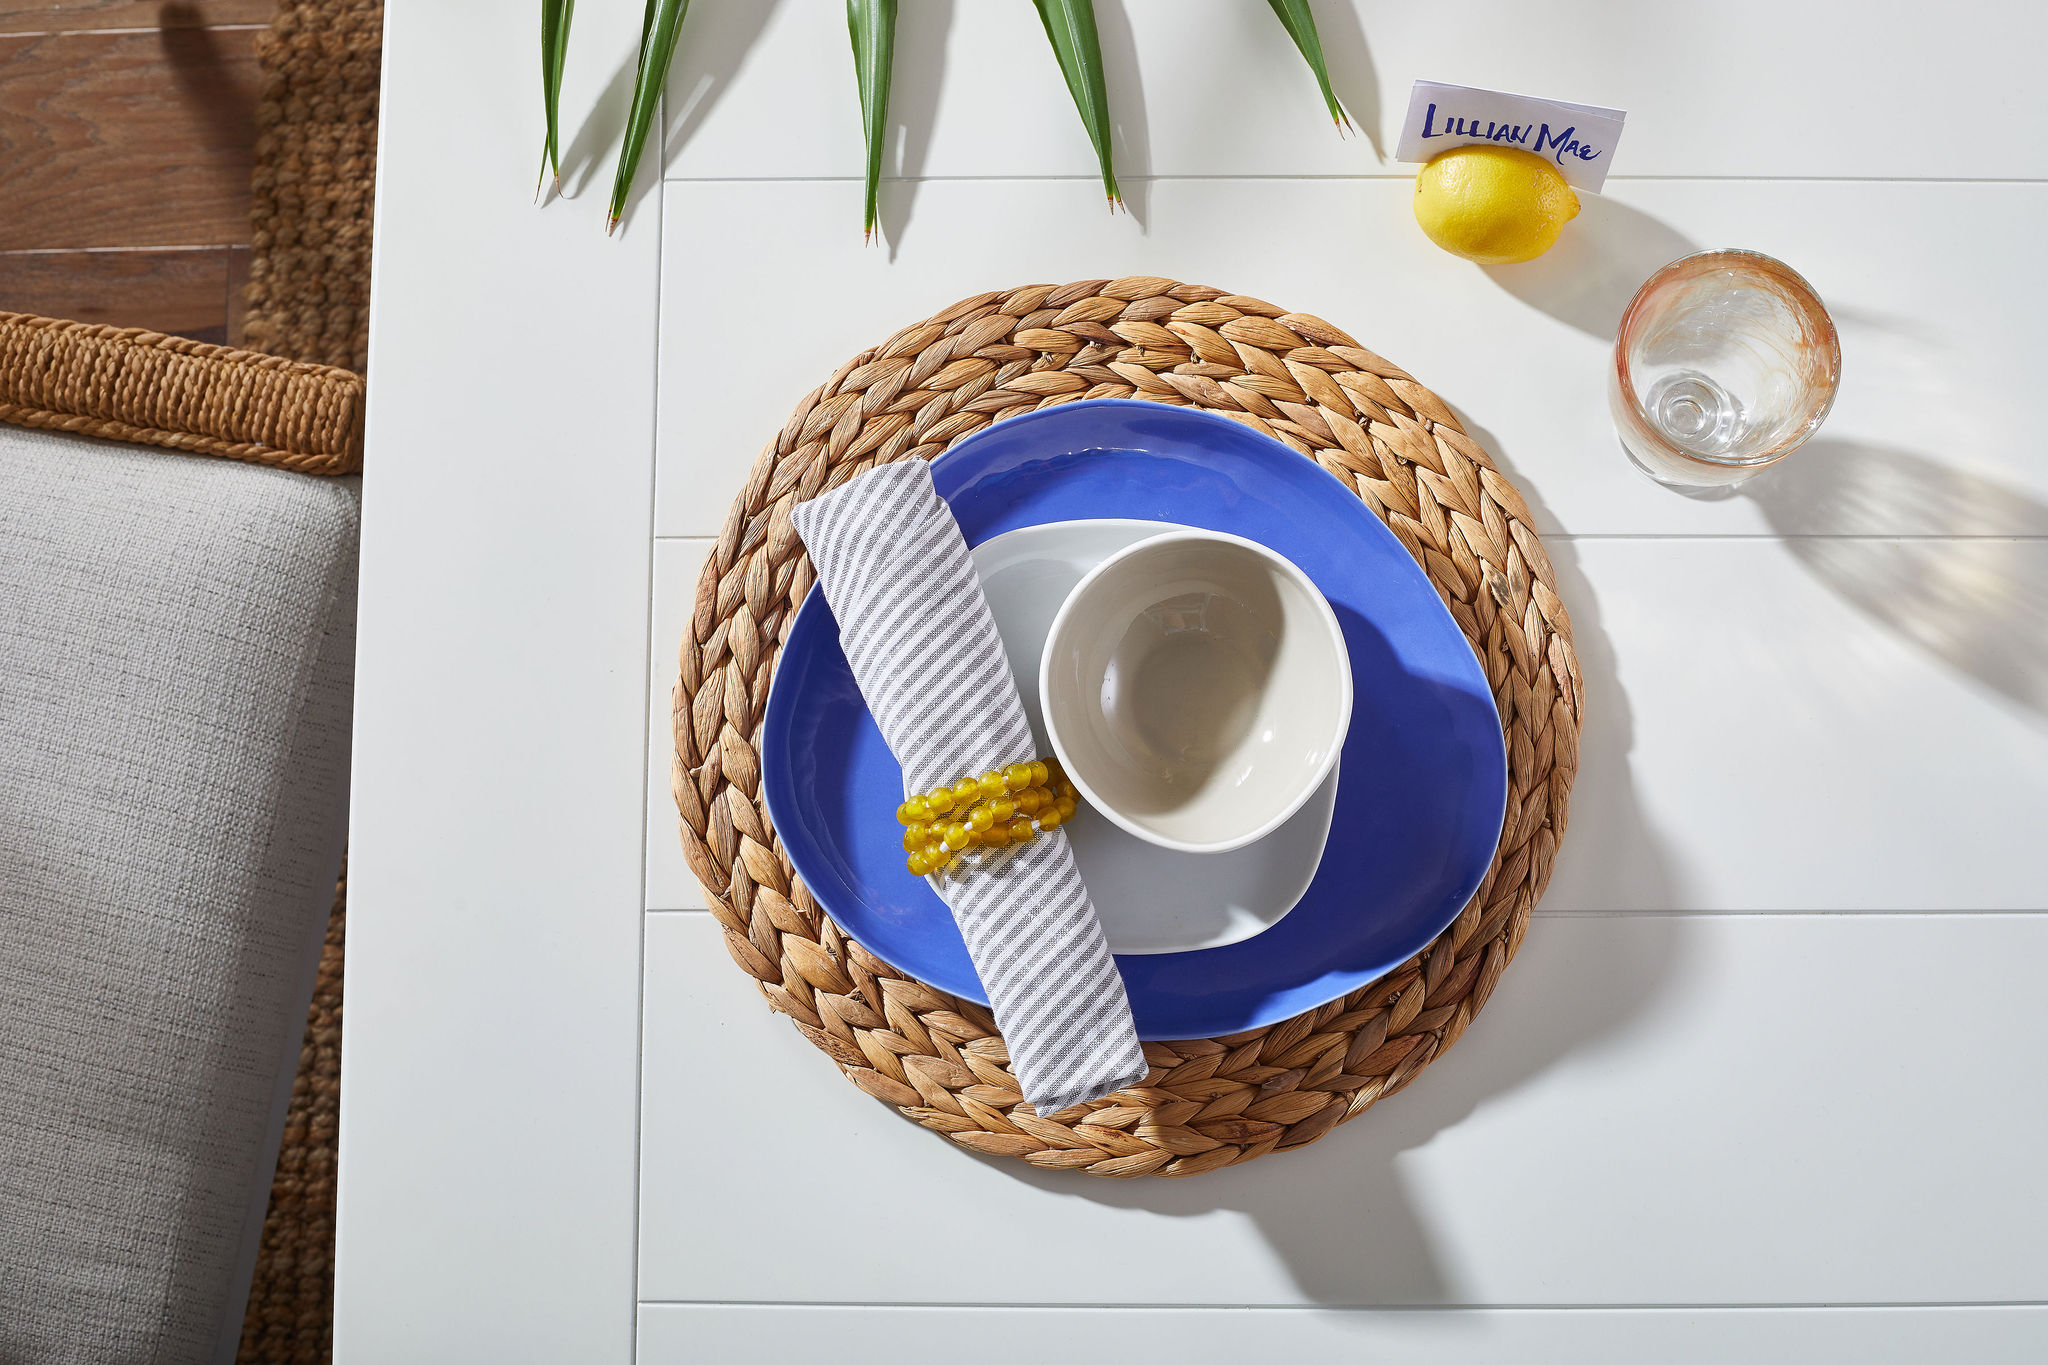 Place setting with a woven placemat, blue base plate, white bowls, a clear glass and a lemon with a nametag in it.